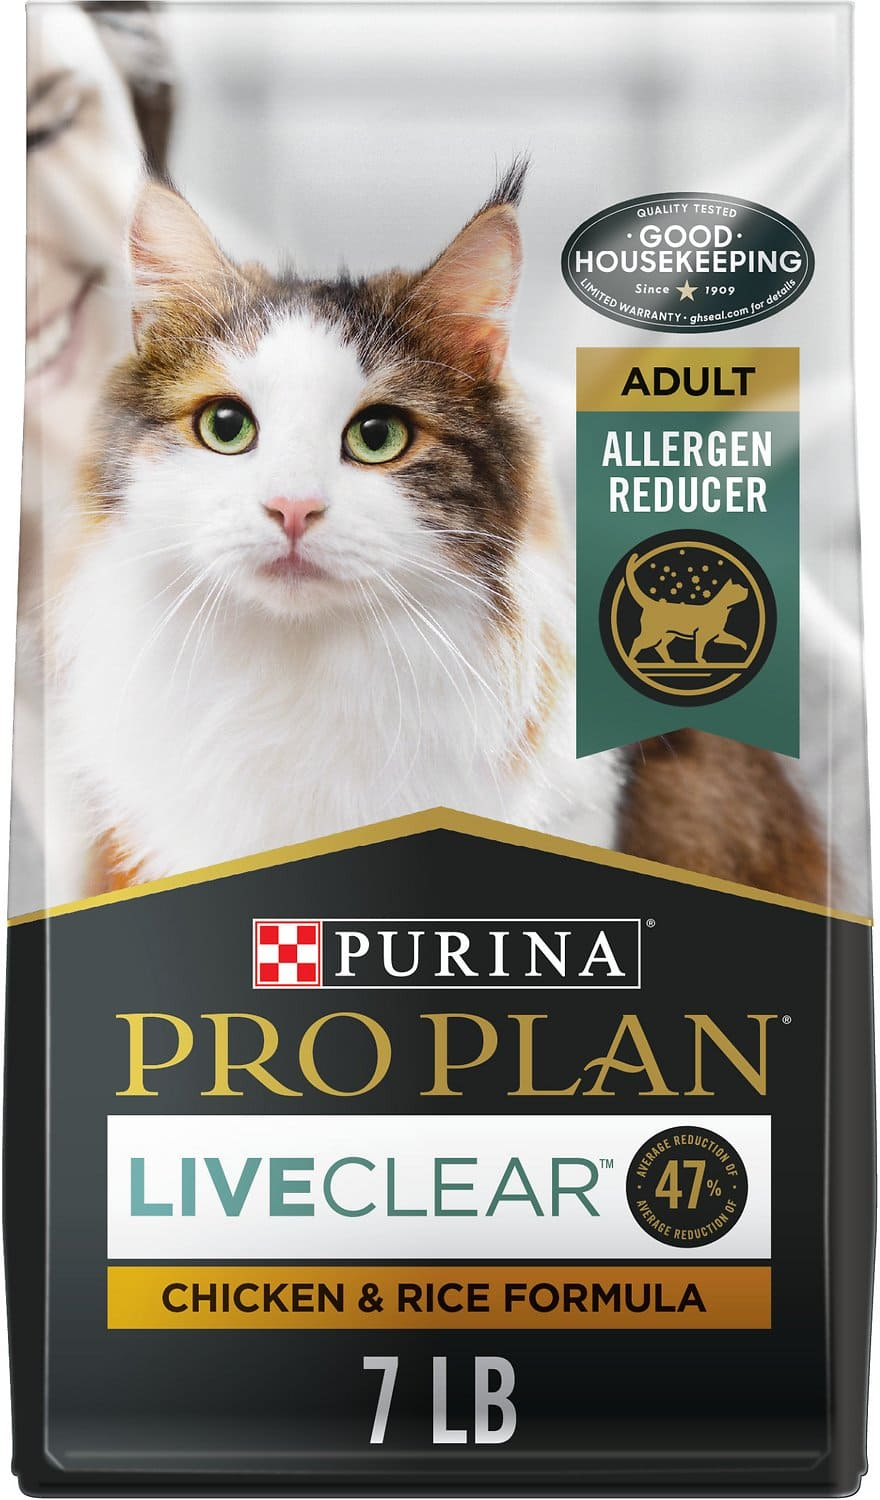 Purina Pro Plan Adult LiveClear  7 lbs Chicken & Rice 1